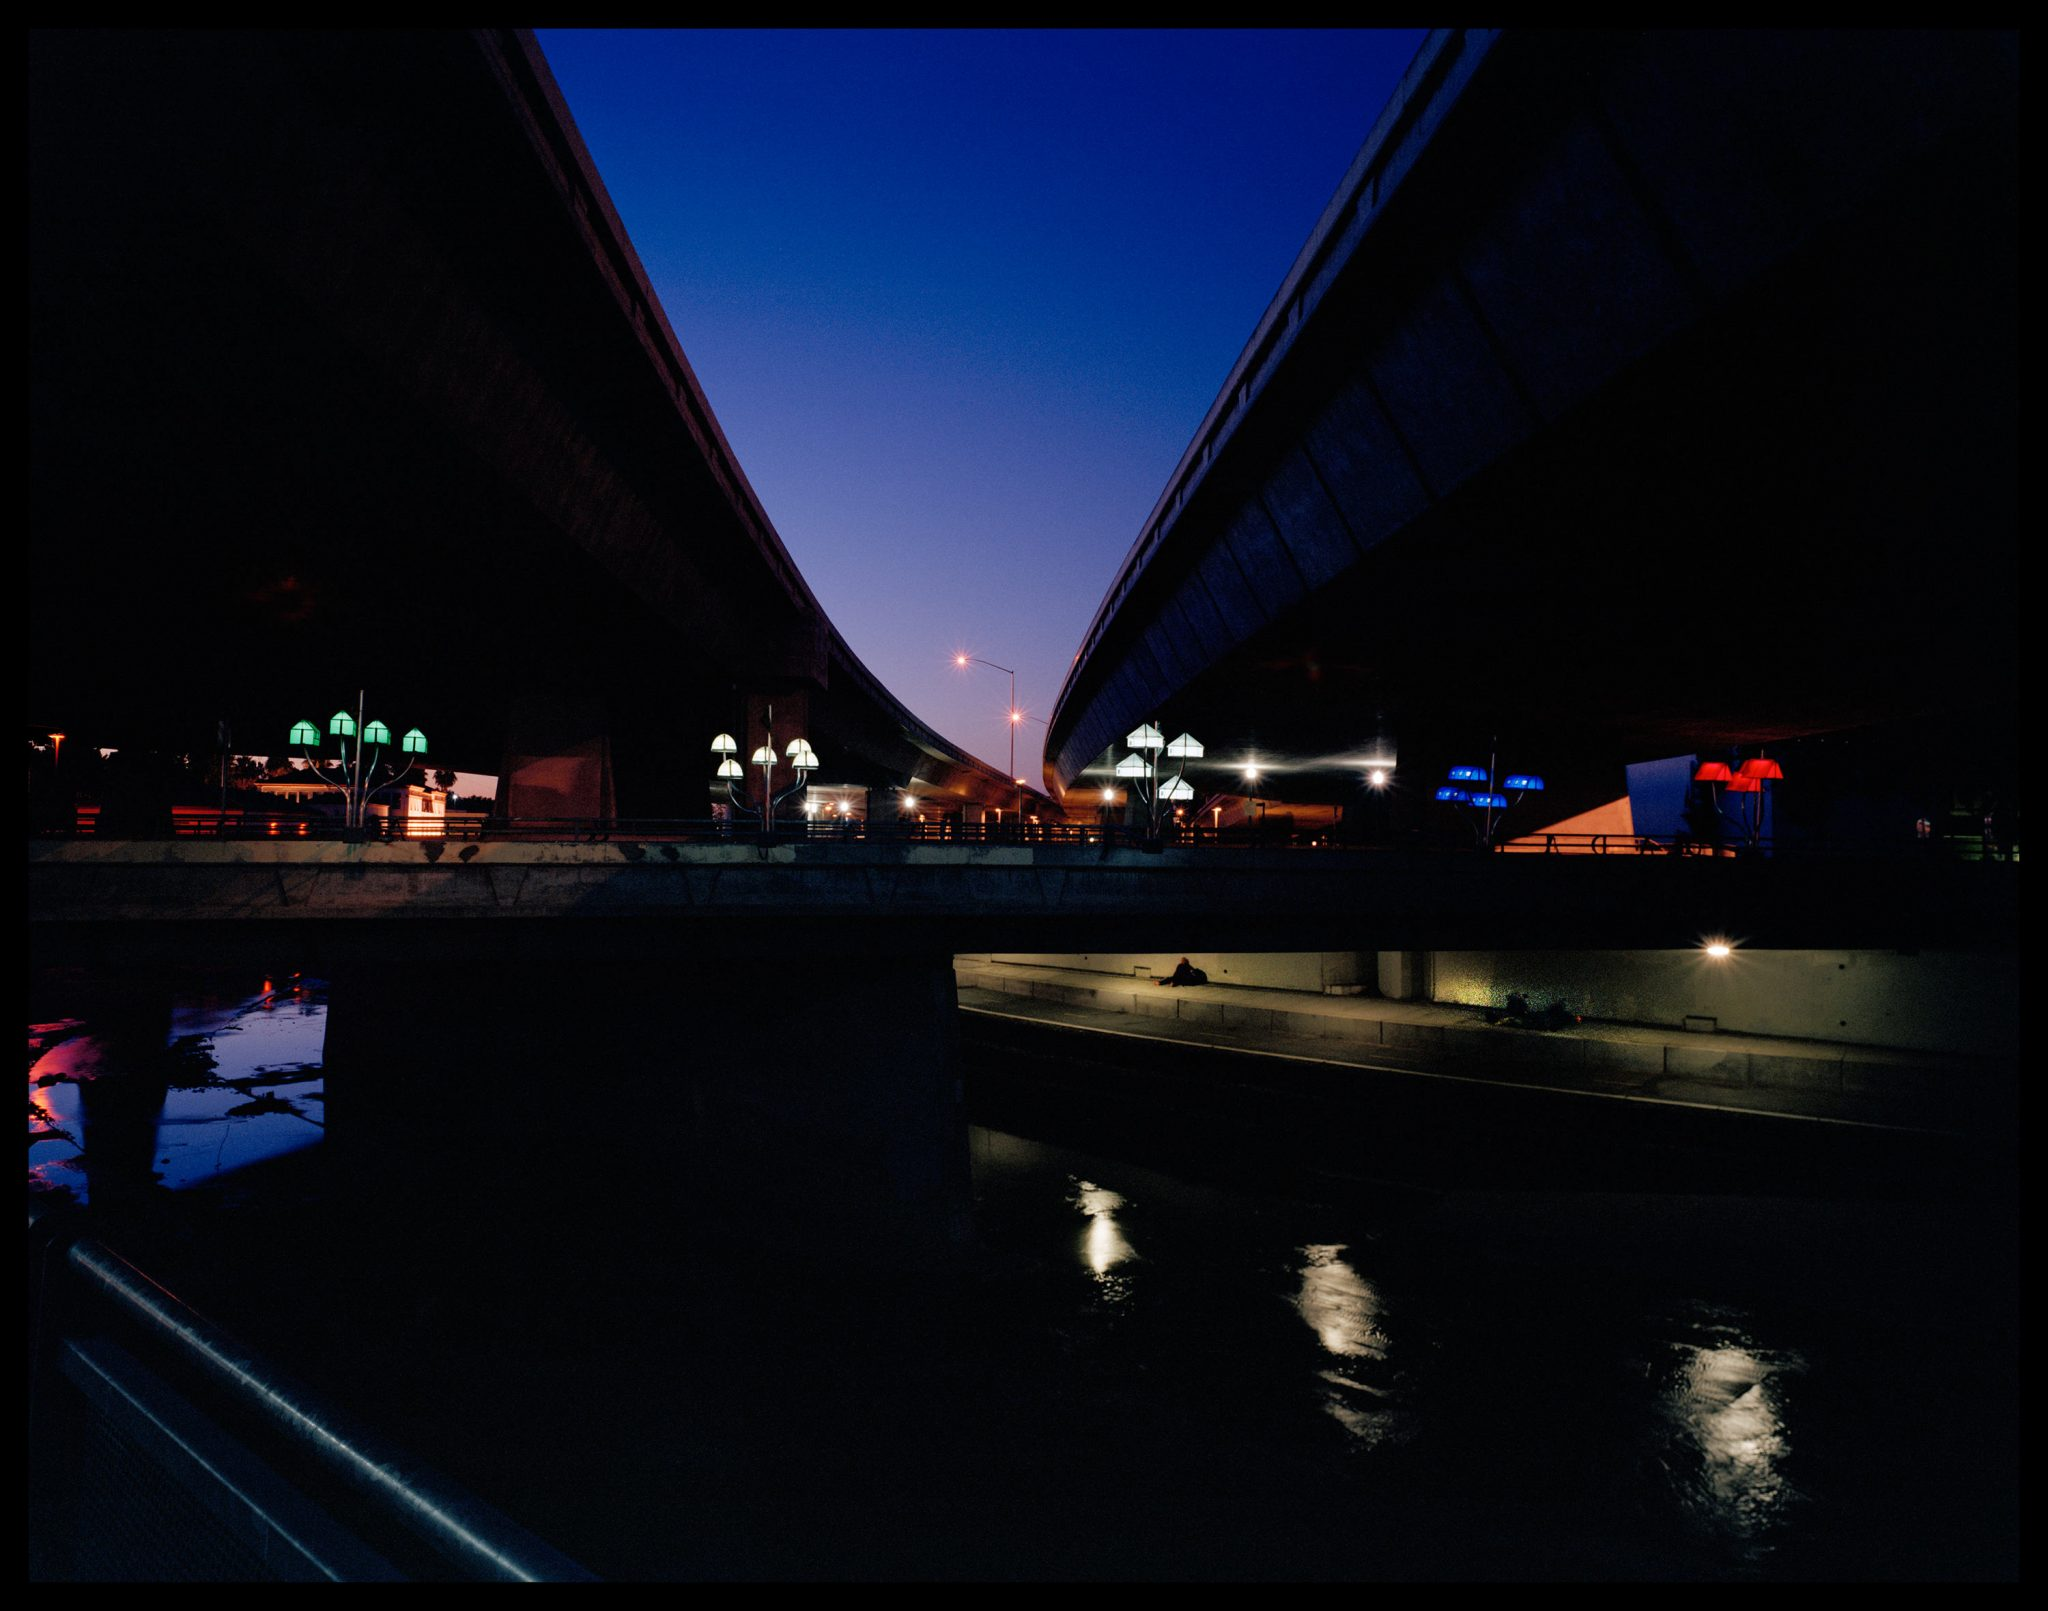 Floating Wold at Night. Work by Robin Lasser and Marguerite Perret. Photo by Robin Lasser